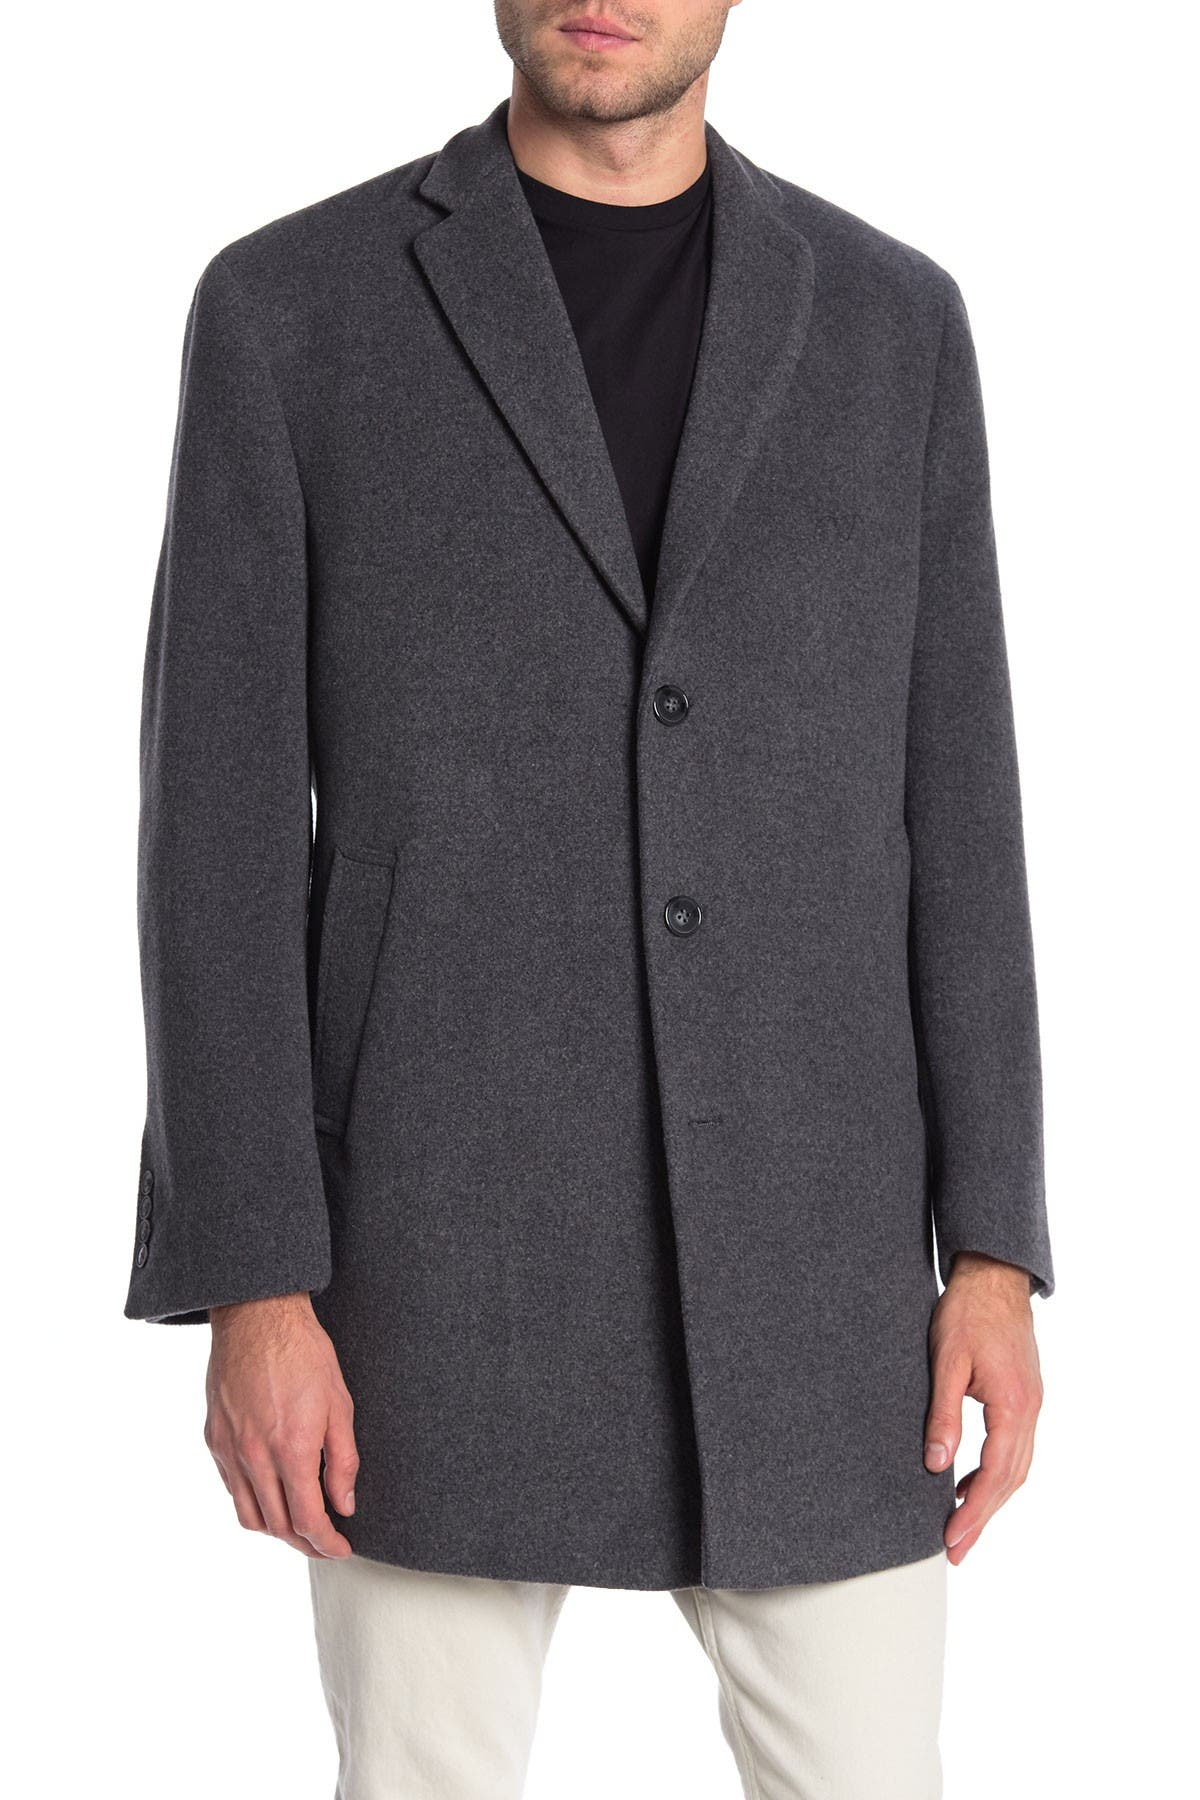 Image of Calvin Klein Heathered Three Button Notch Lapel Slim Fit Coat